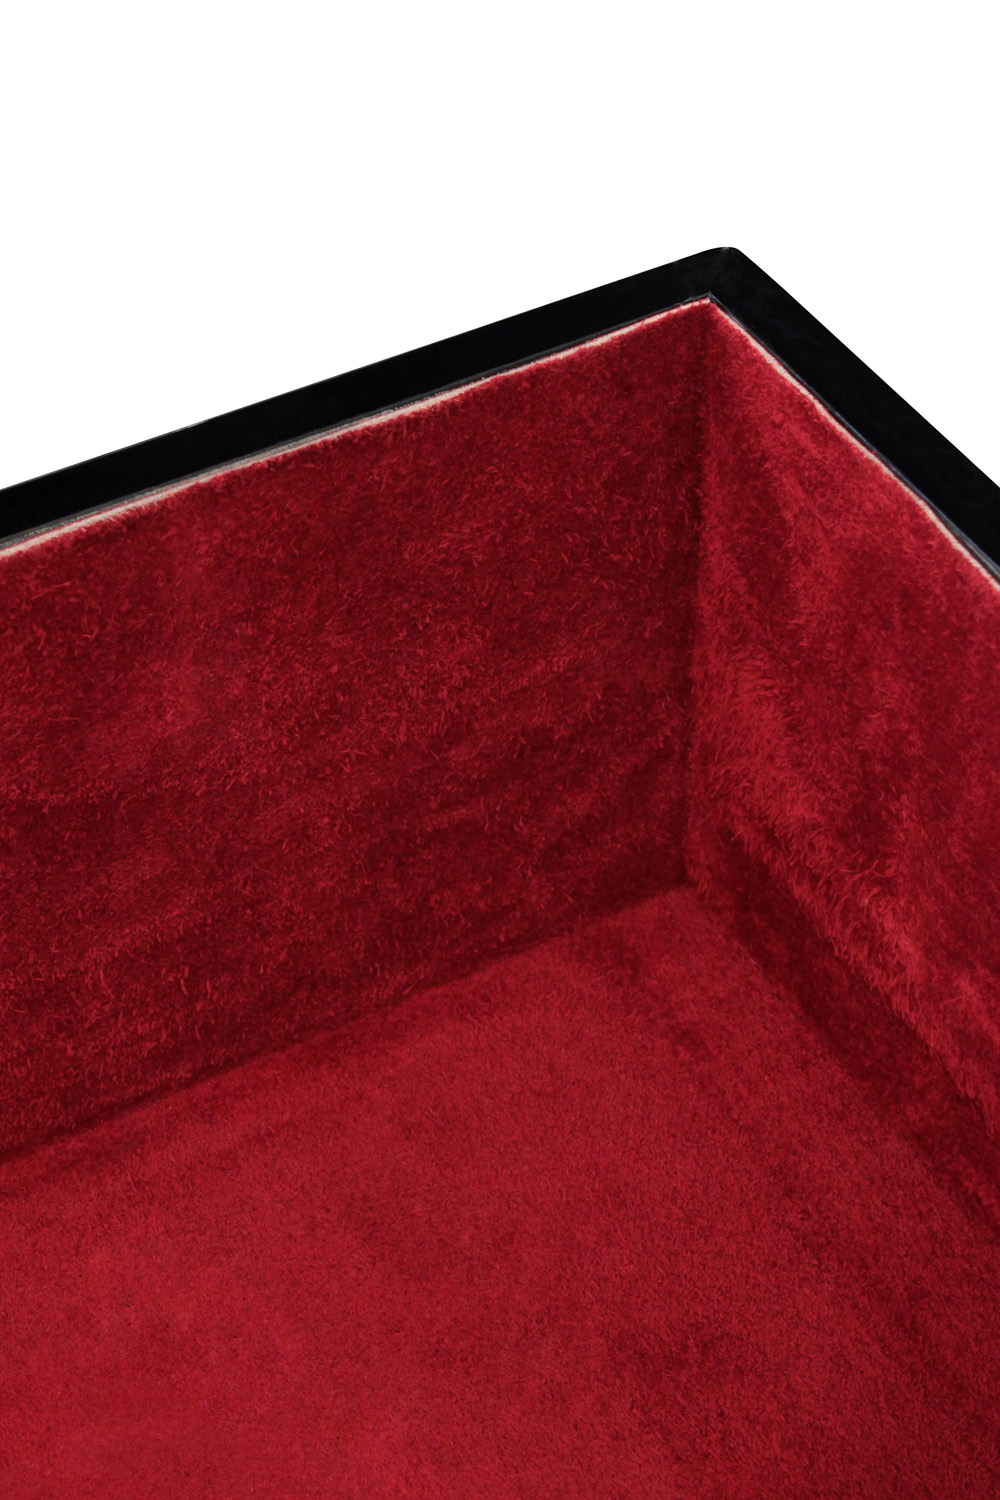 Springer 35 burg diamond goatskin accessory125 detail2 hires.jpg